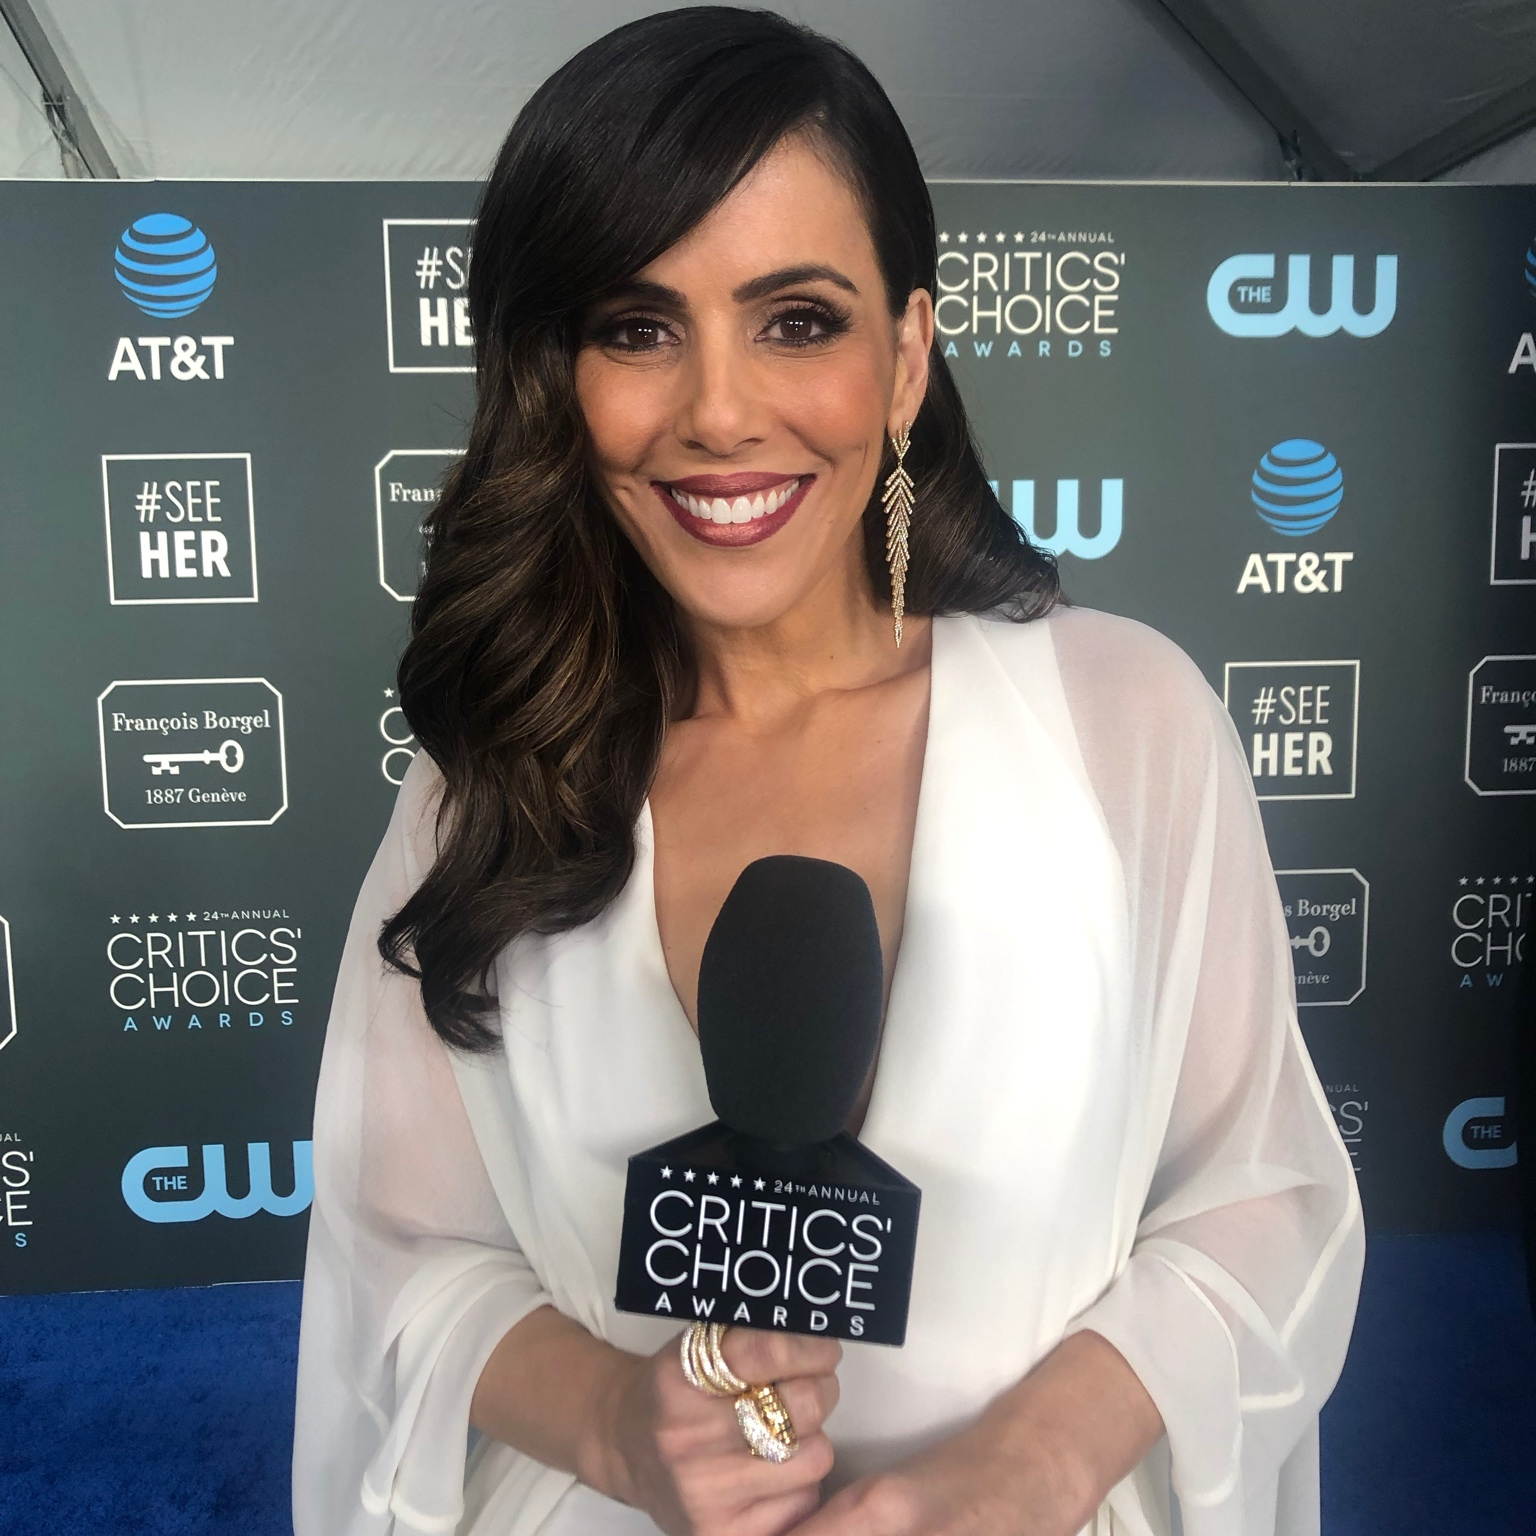 Image of Megan Henderson at Critics' Choice Awards link to television and film services